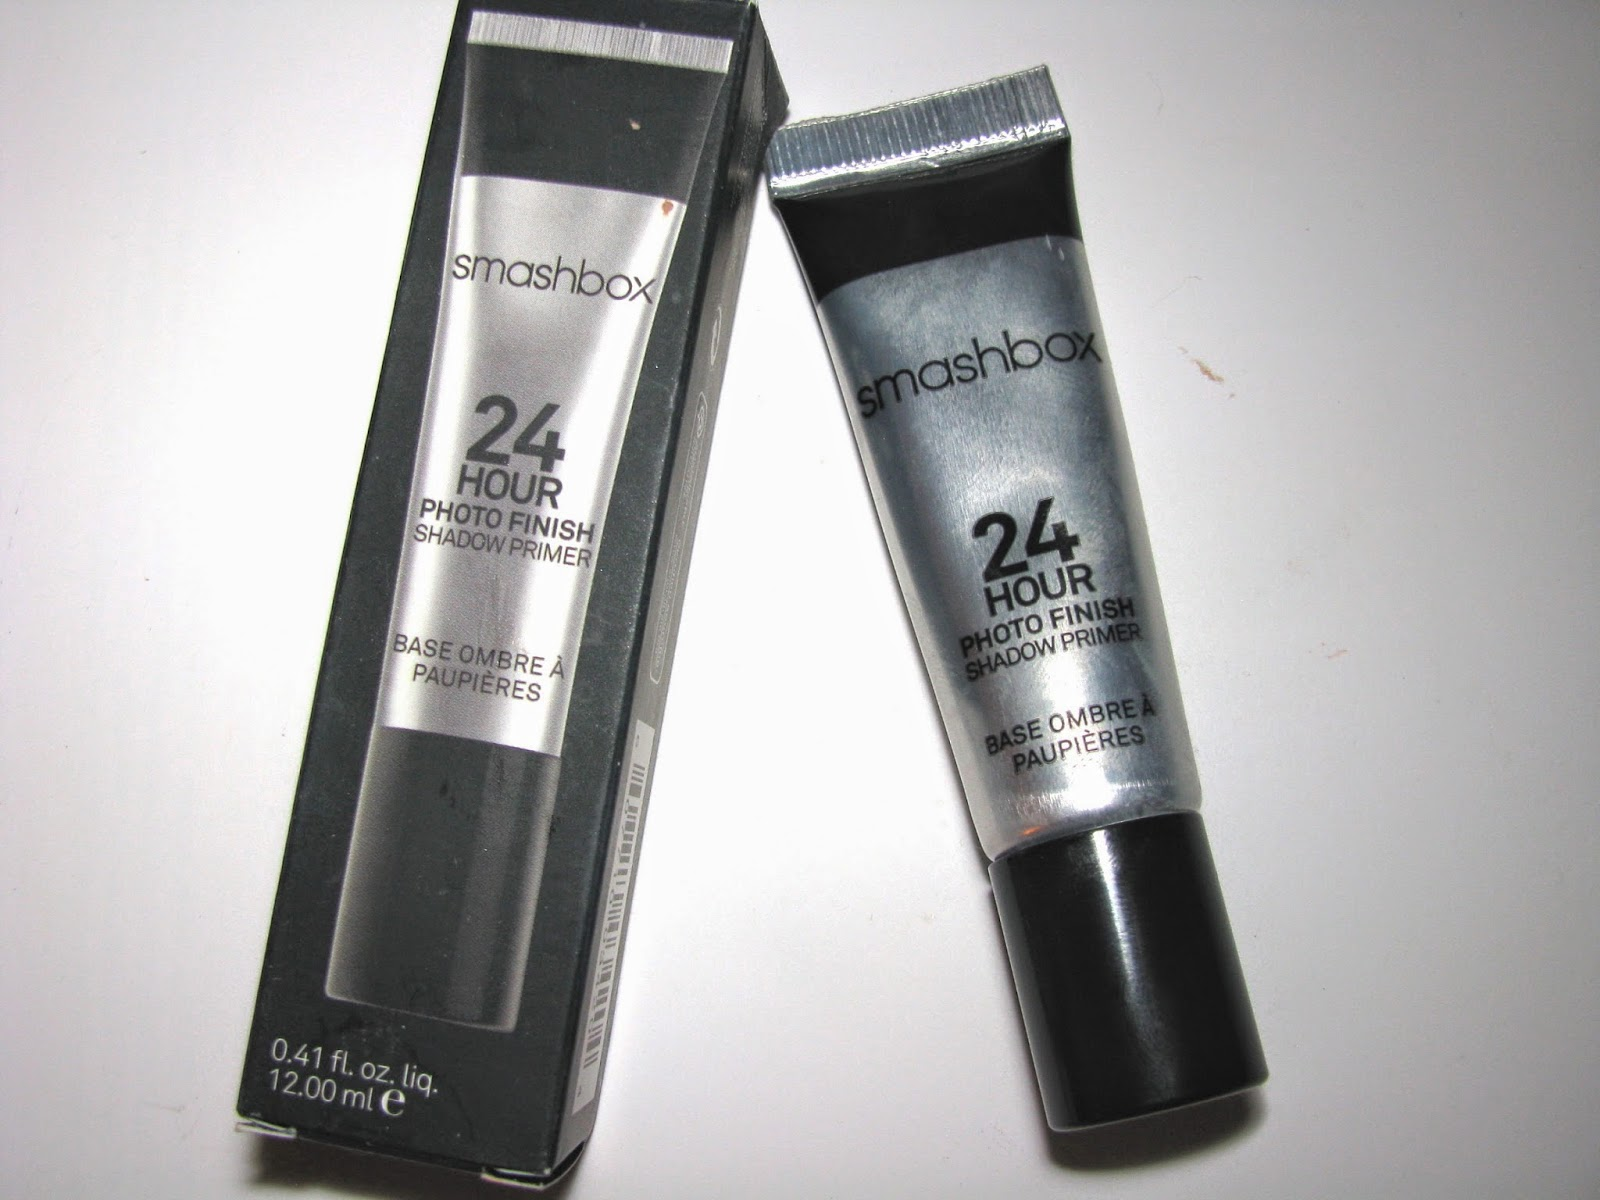 24 Hour Photo Finish Shadow Primer by Smashbox #22